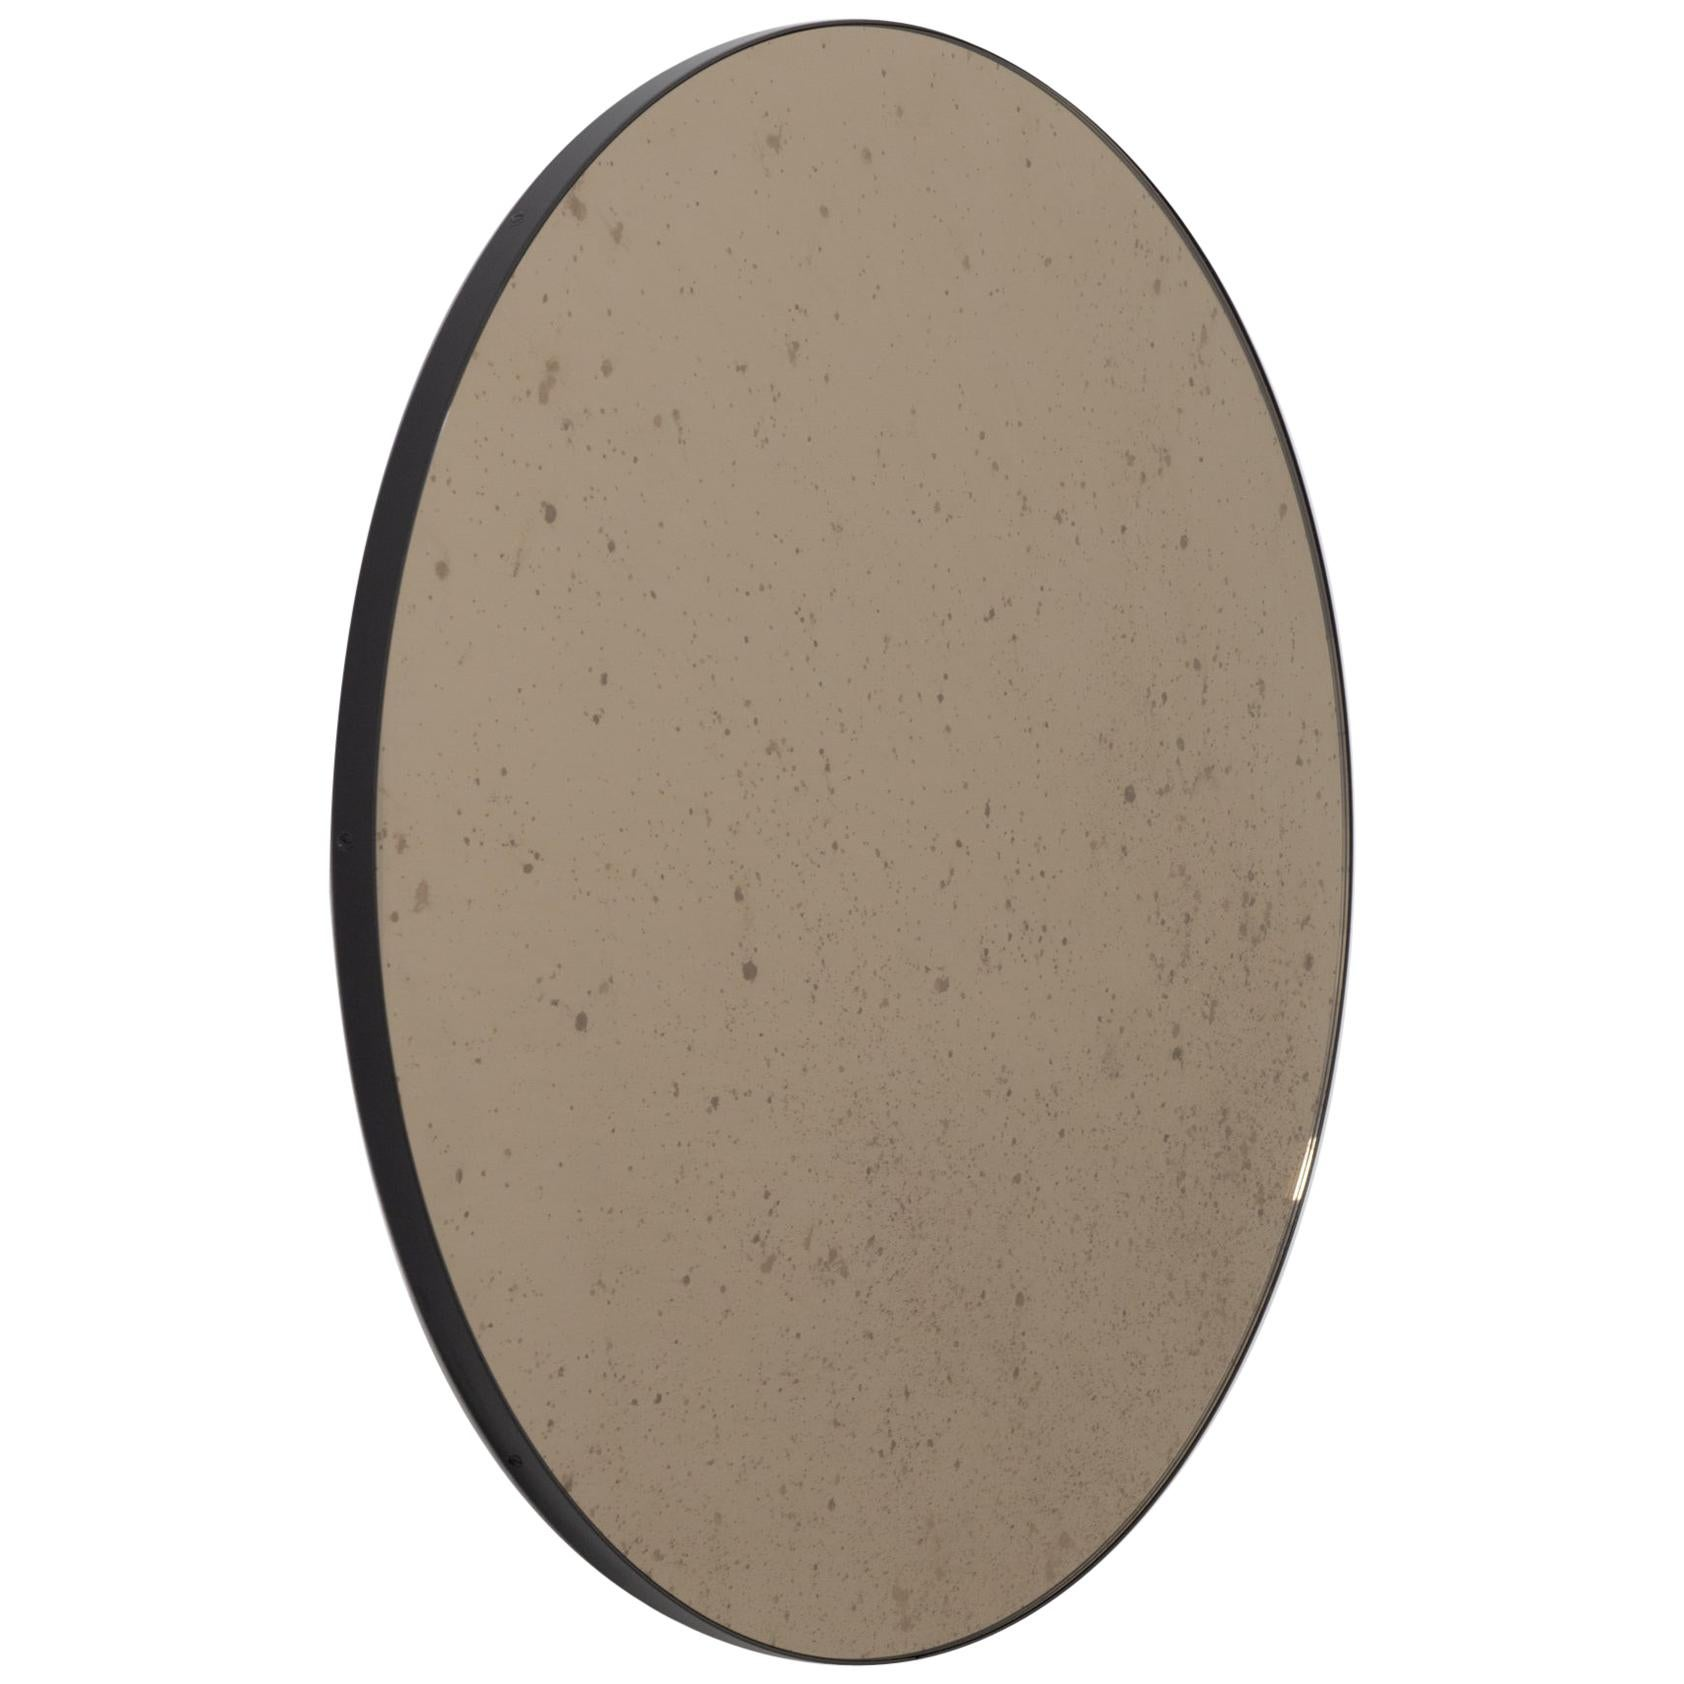 Orbis™ Round Antiqued Bronze Tinted Bespoke Mirror with a Black Frame - Small